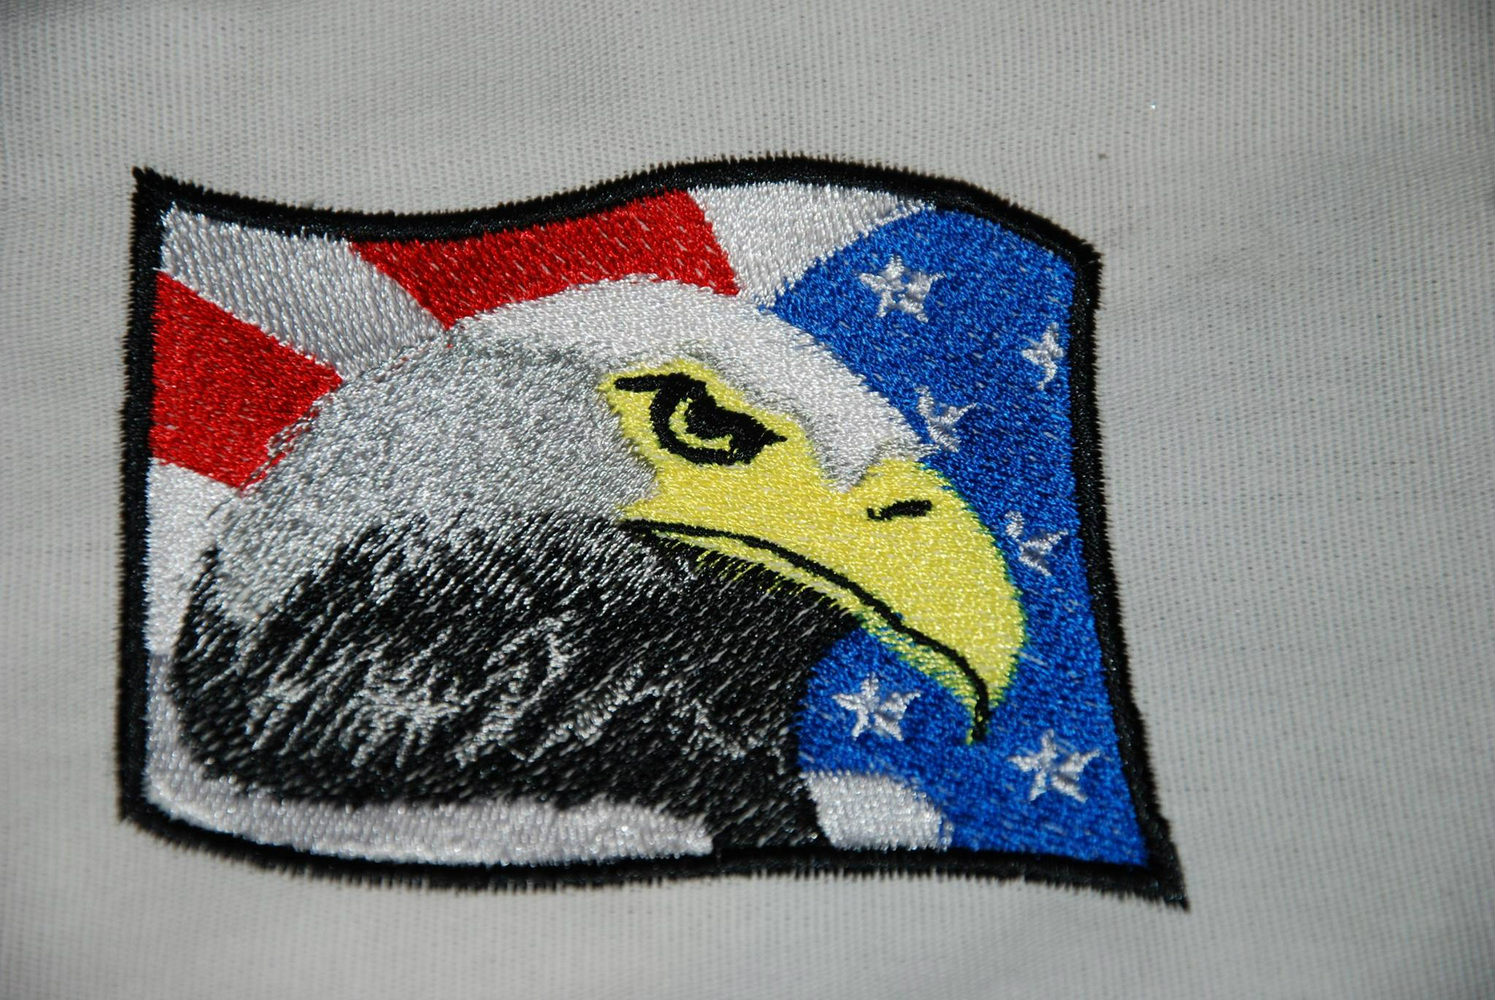 American eagle design on t-shirt 2